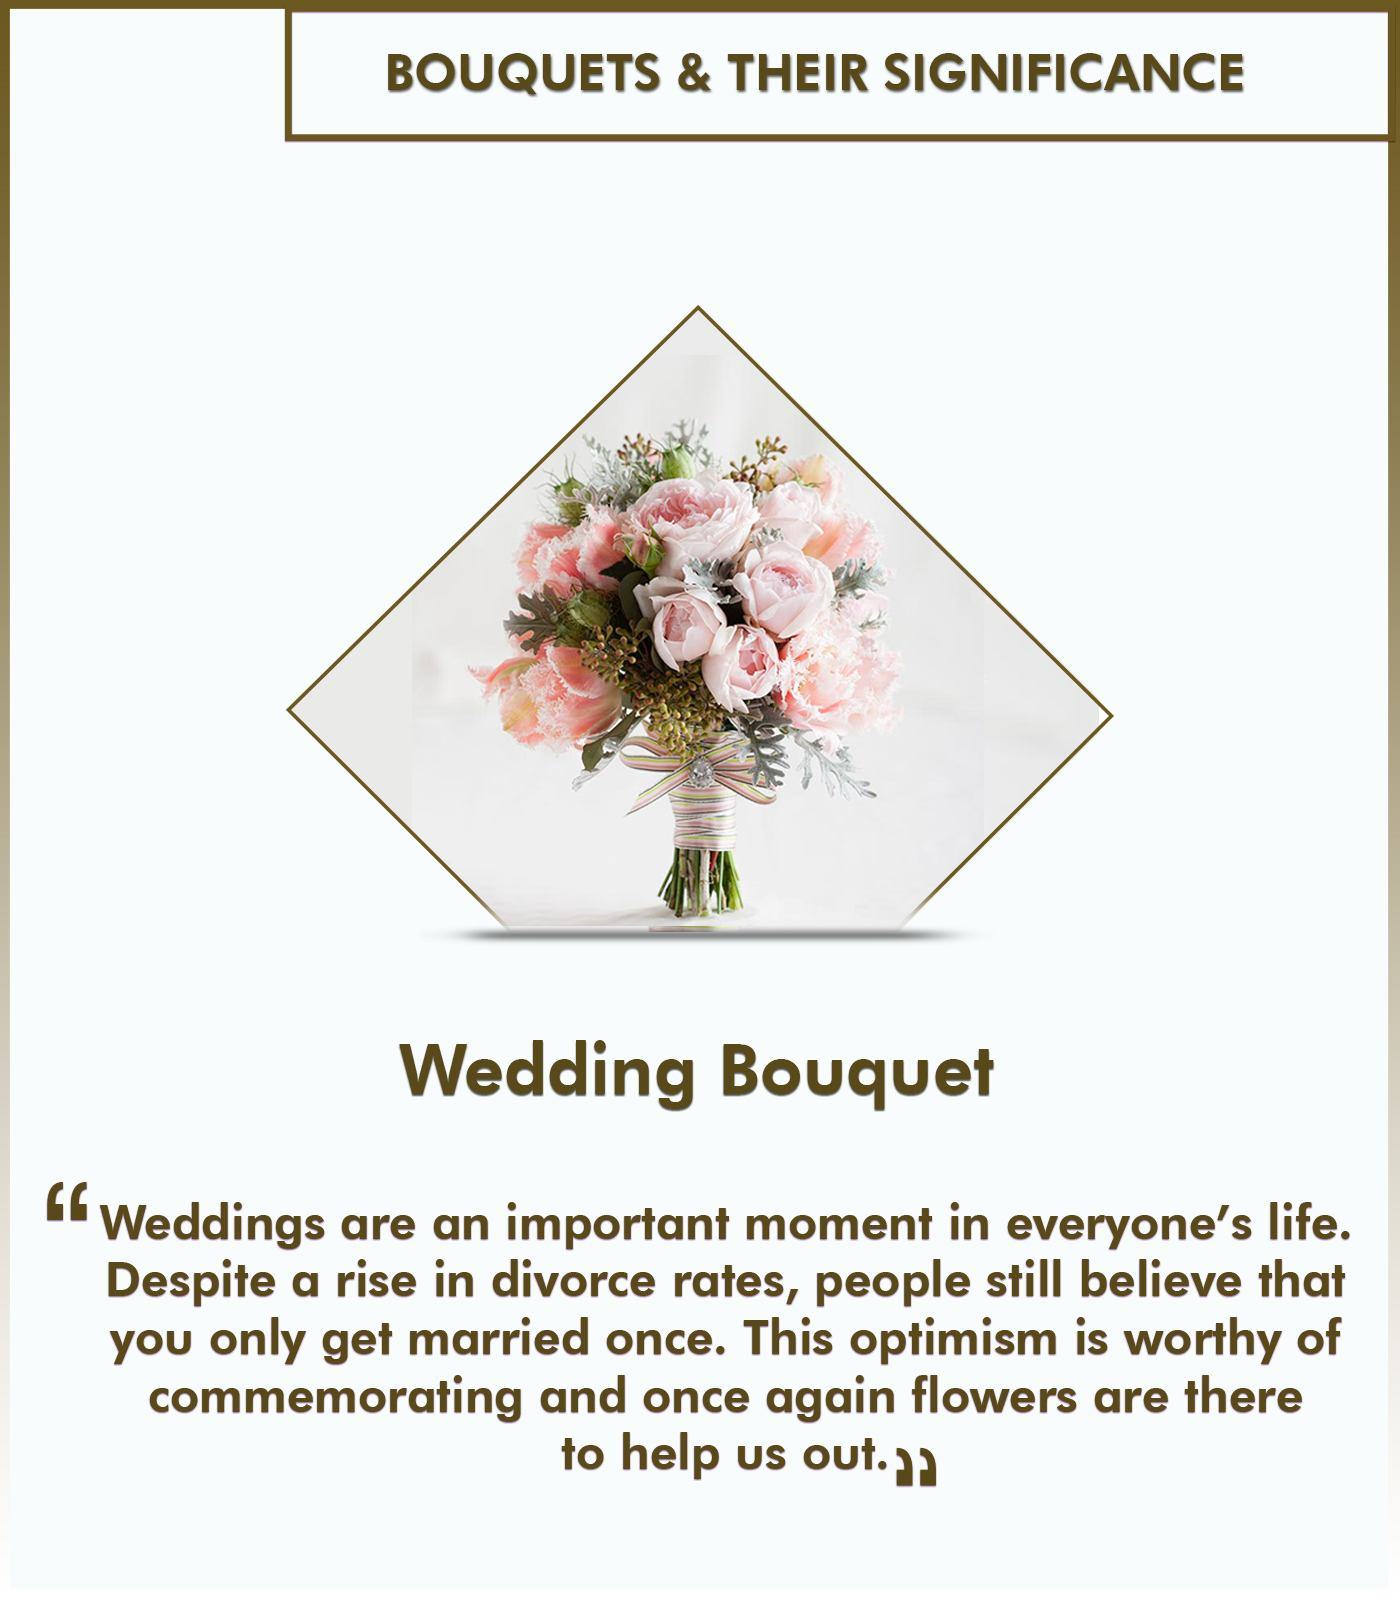 Types of bouquets and their significance - Wedding bouquet